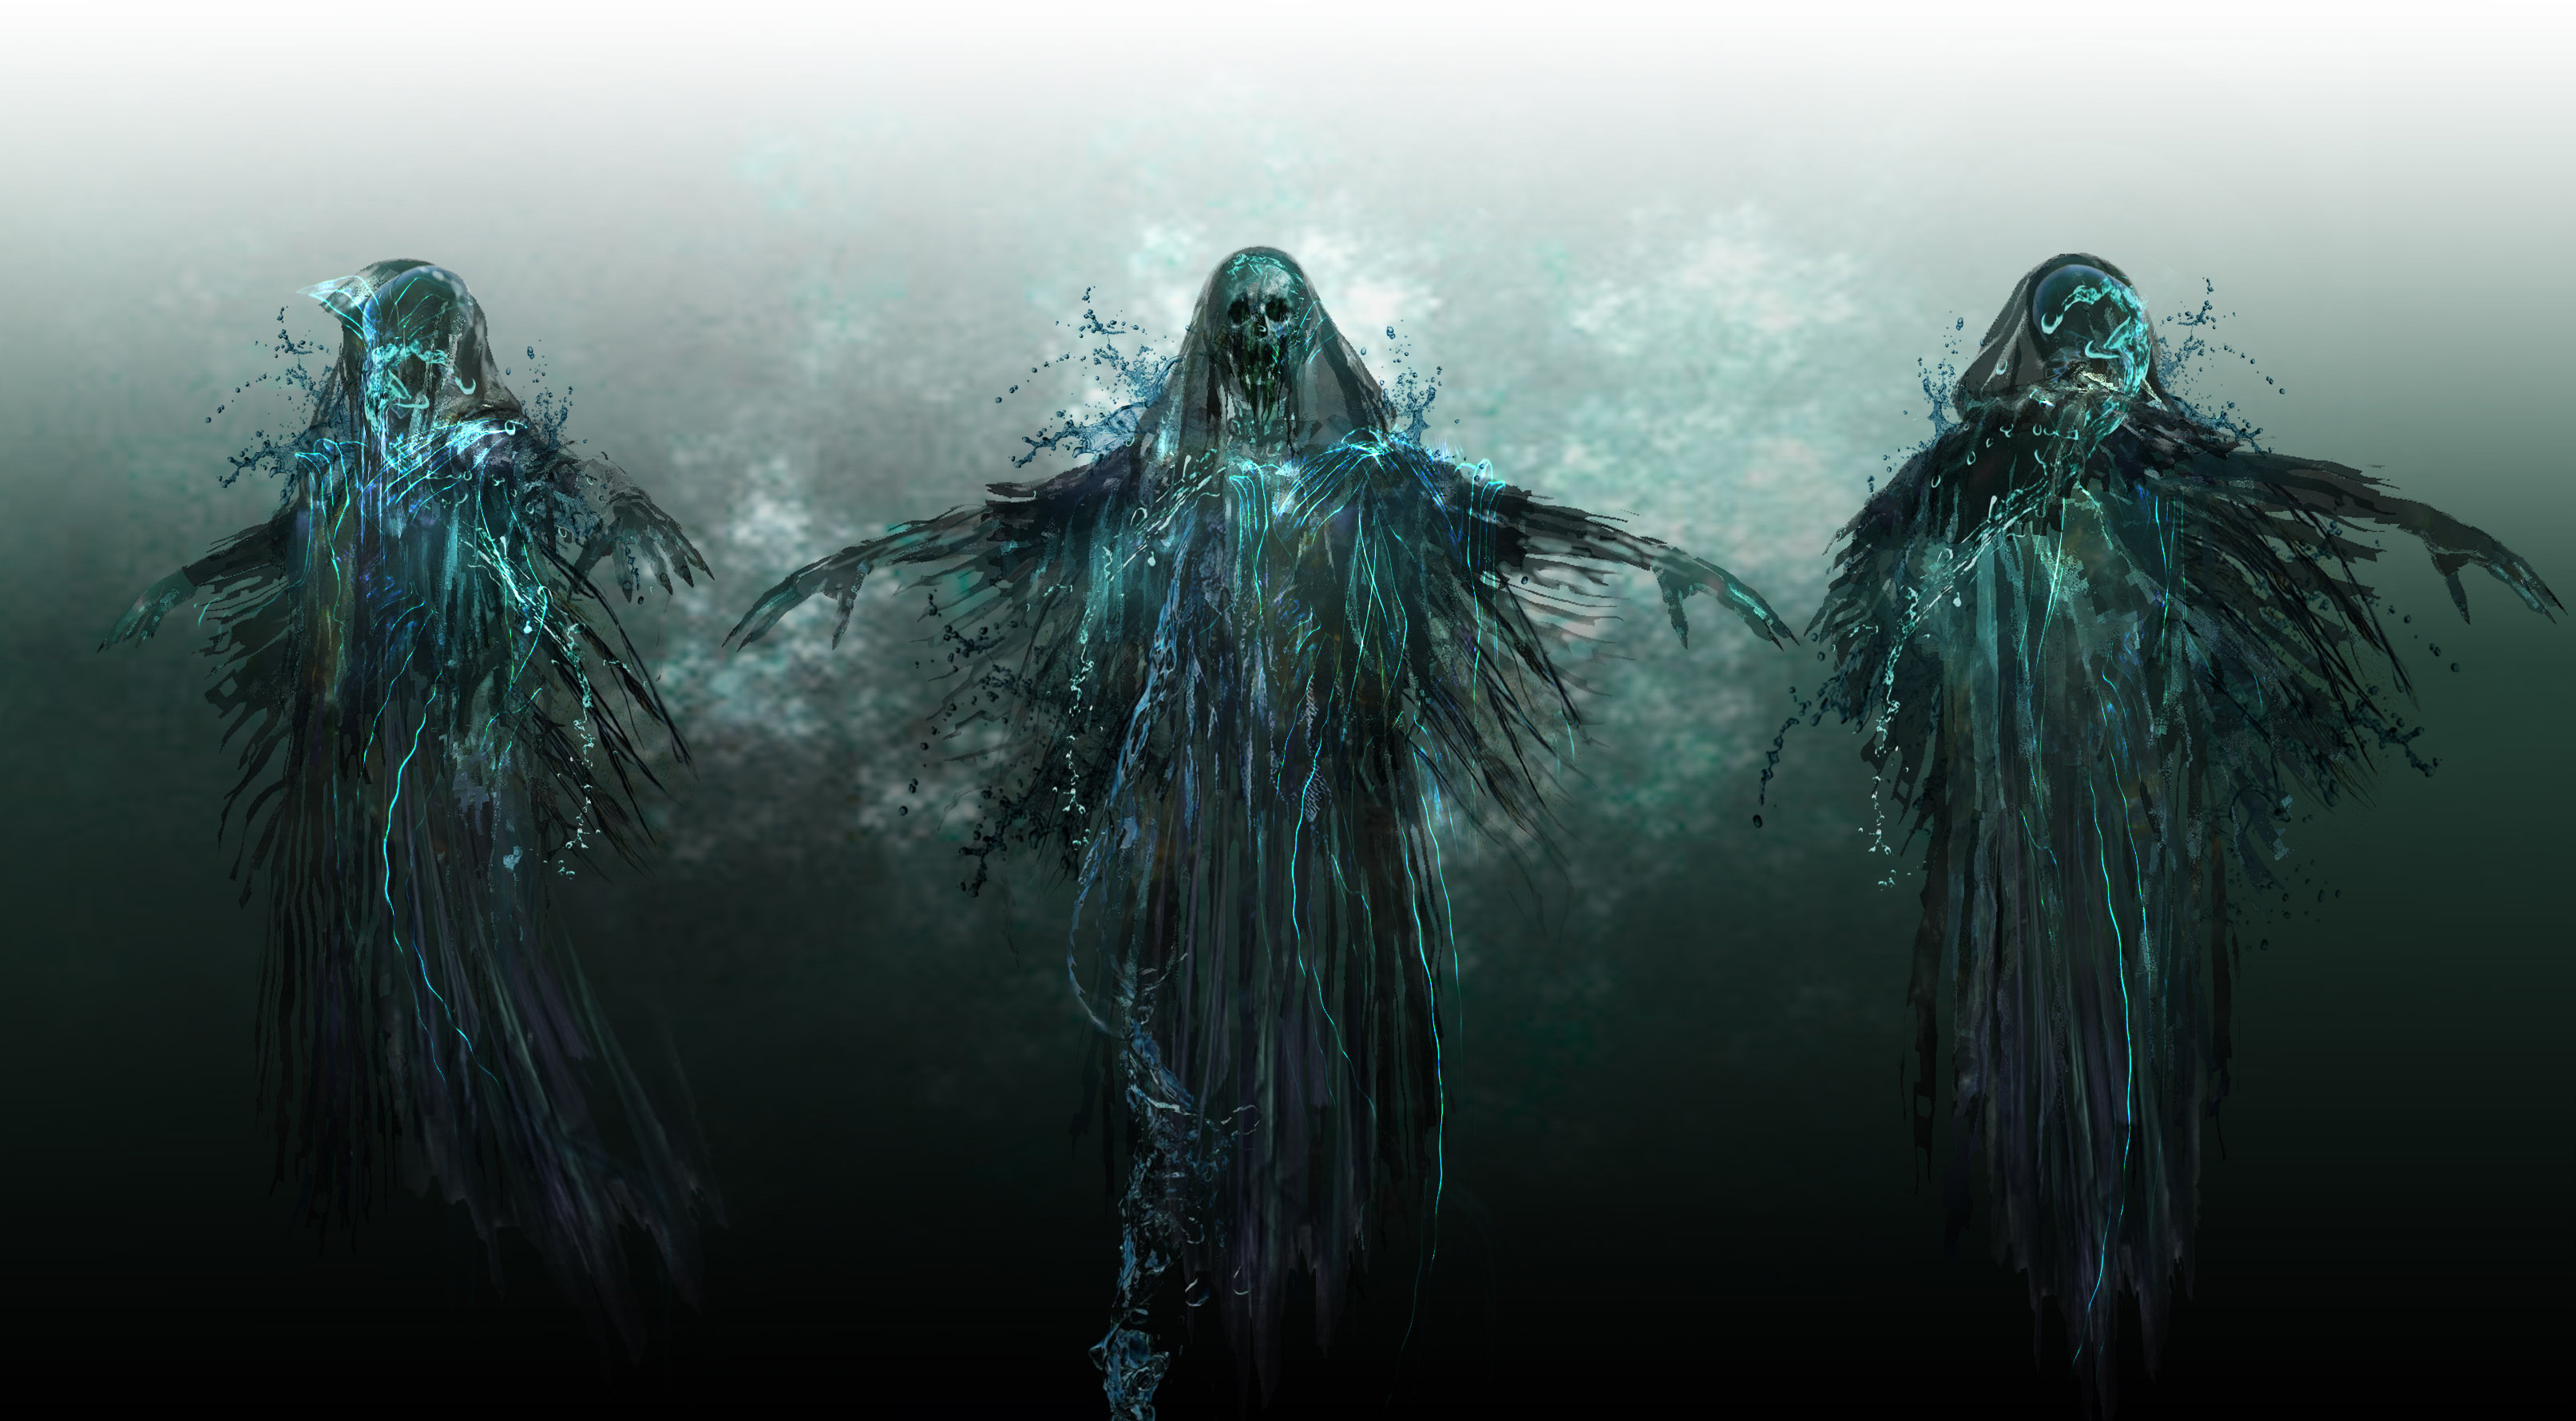 Lost Water Souls Concept  / Once Upon  a Time Season 5